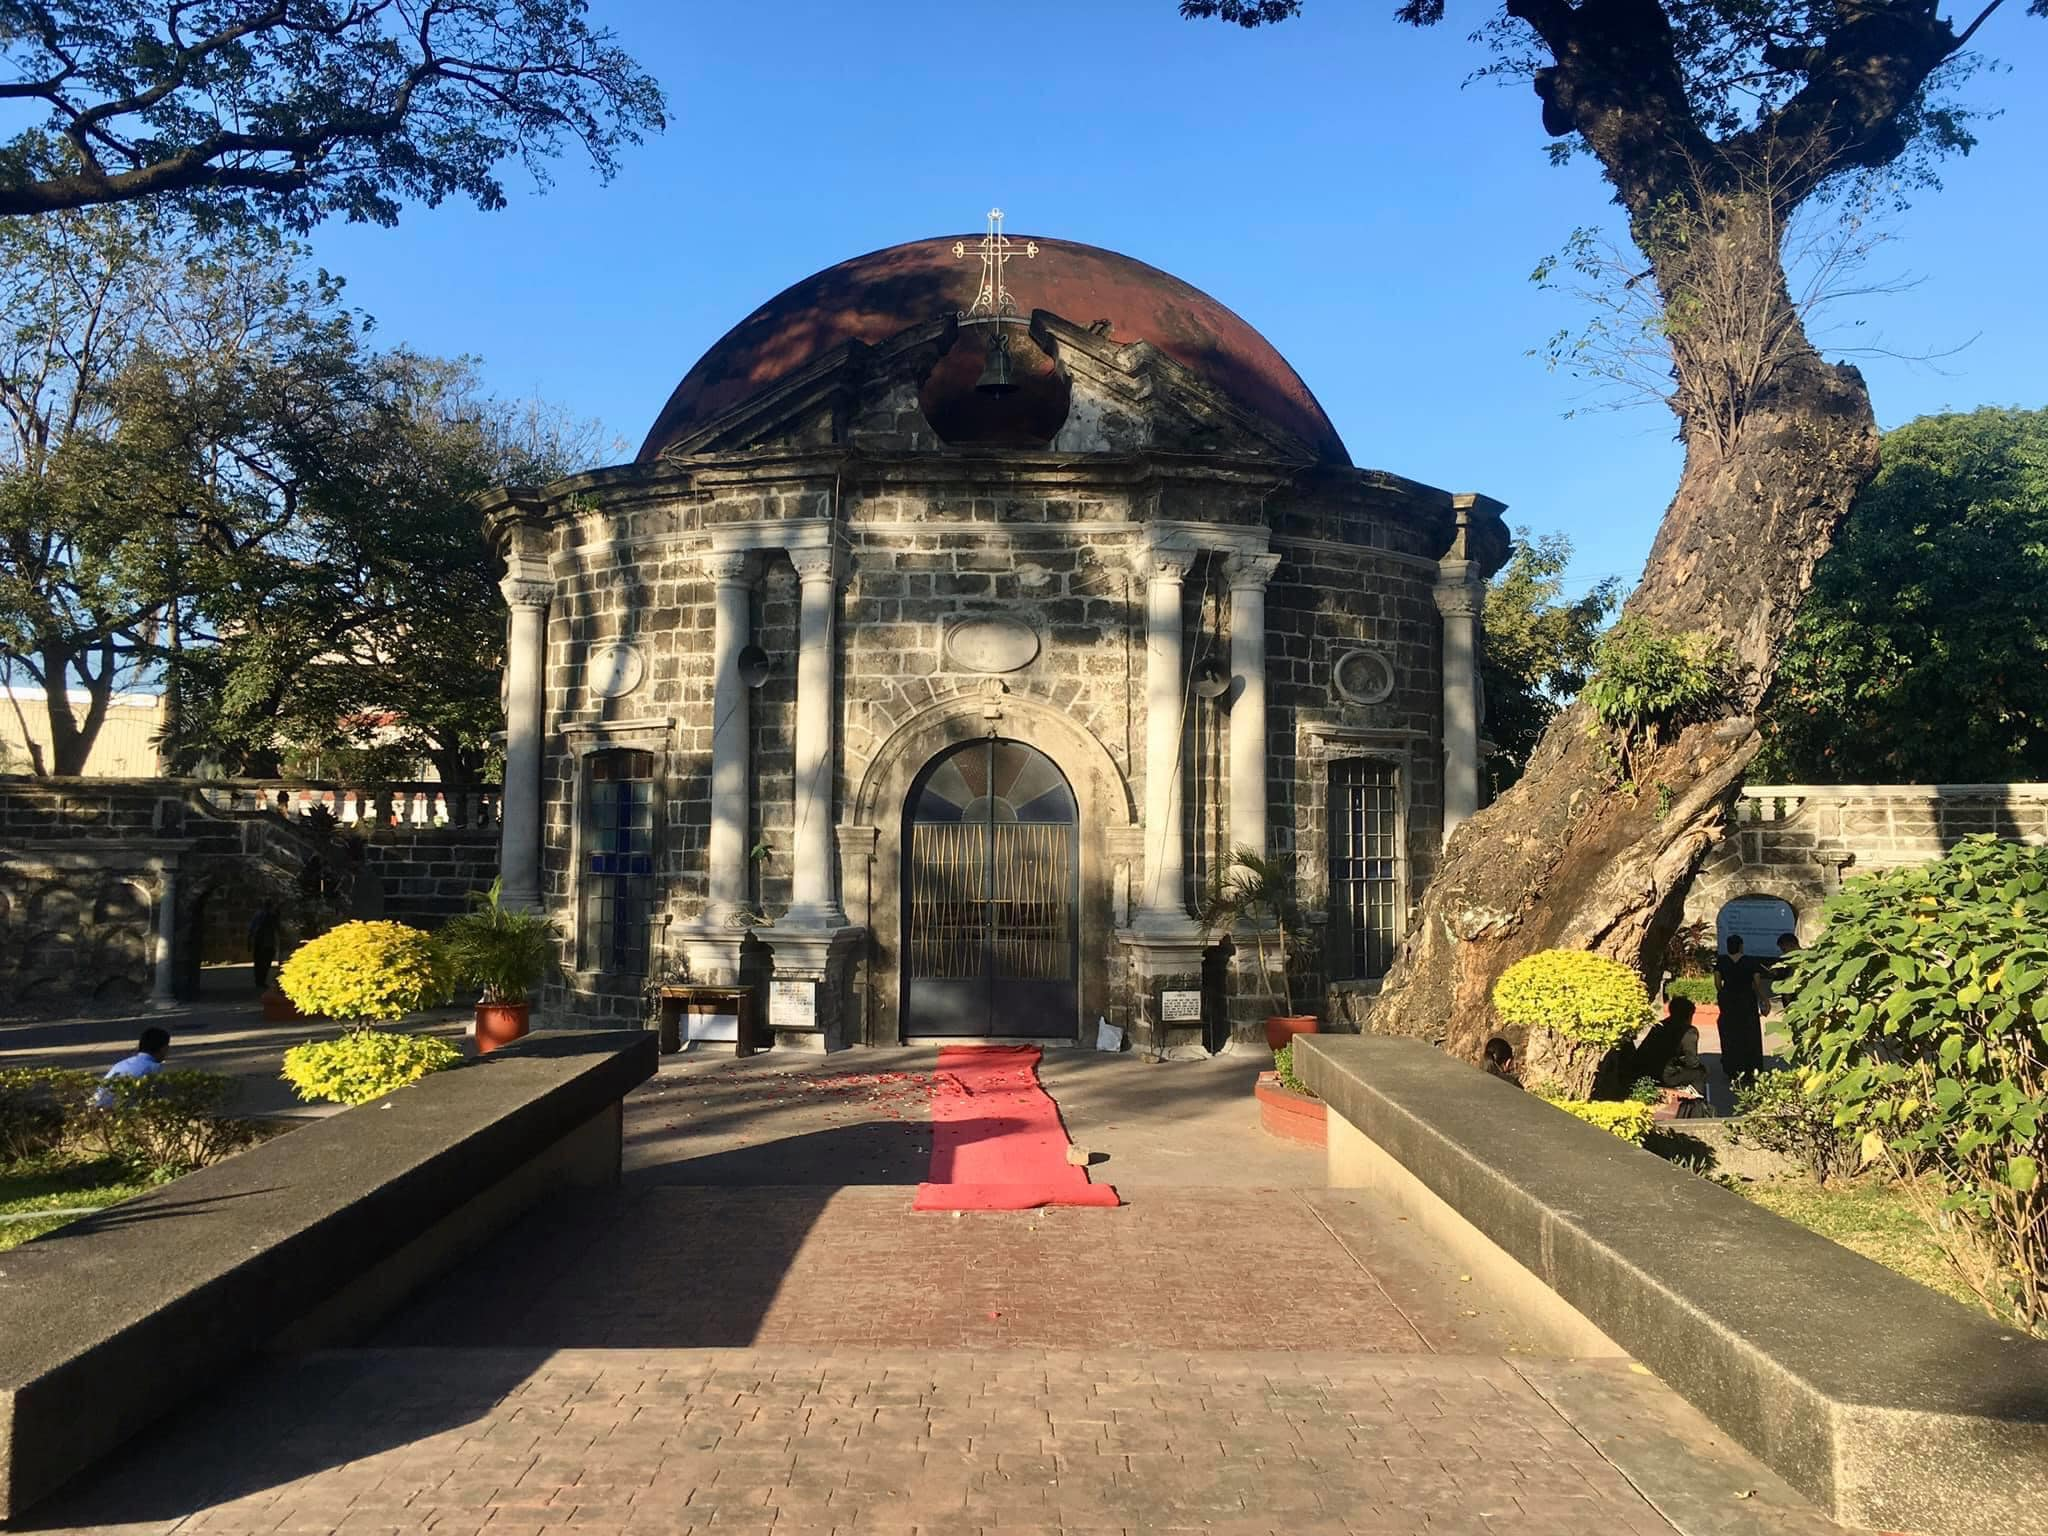 Mortuary chapel of Paco Cemetery, now known as St. Pancratius Chapel Photo credits to Lorenzo Bukas